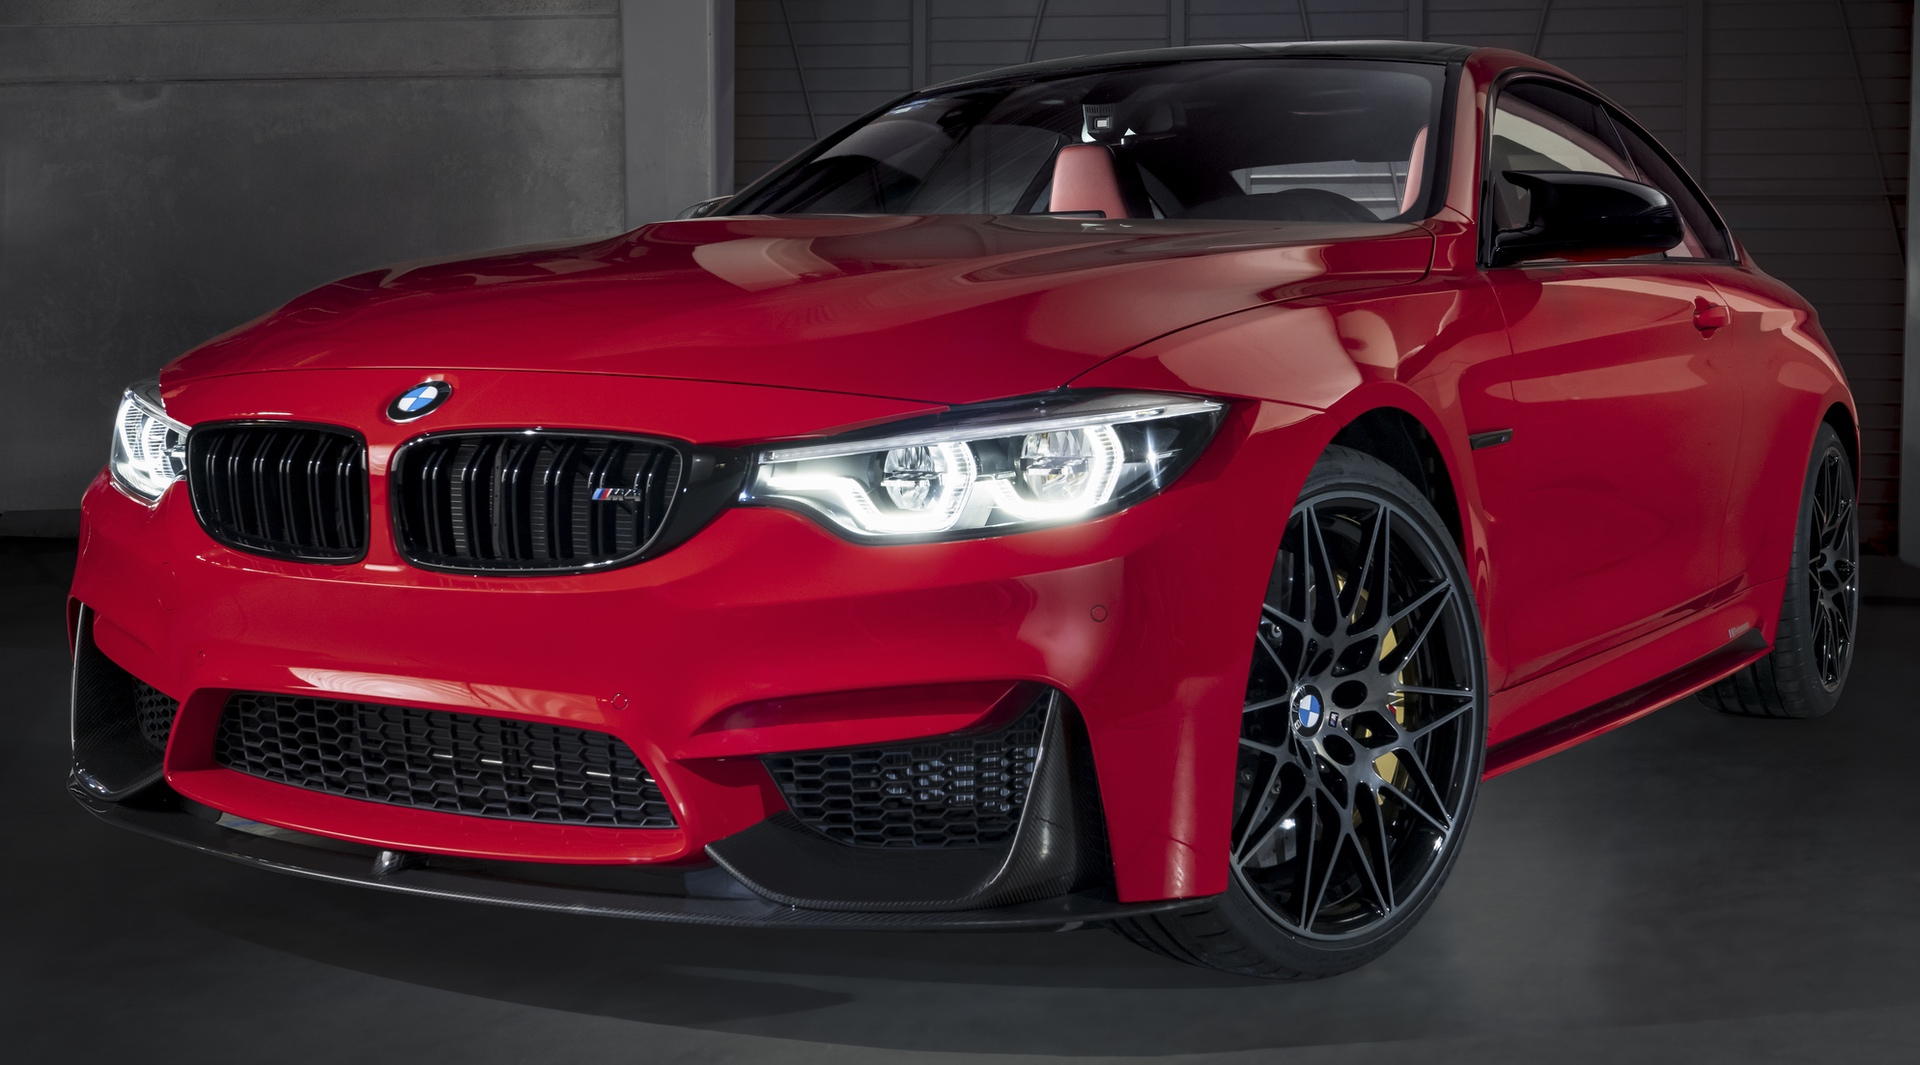 #M4CHALLENGE: Vote On 16 BMW M4 Individual color